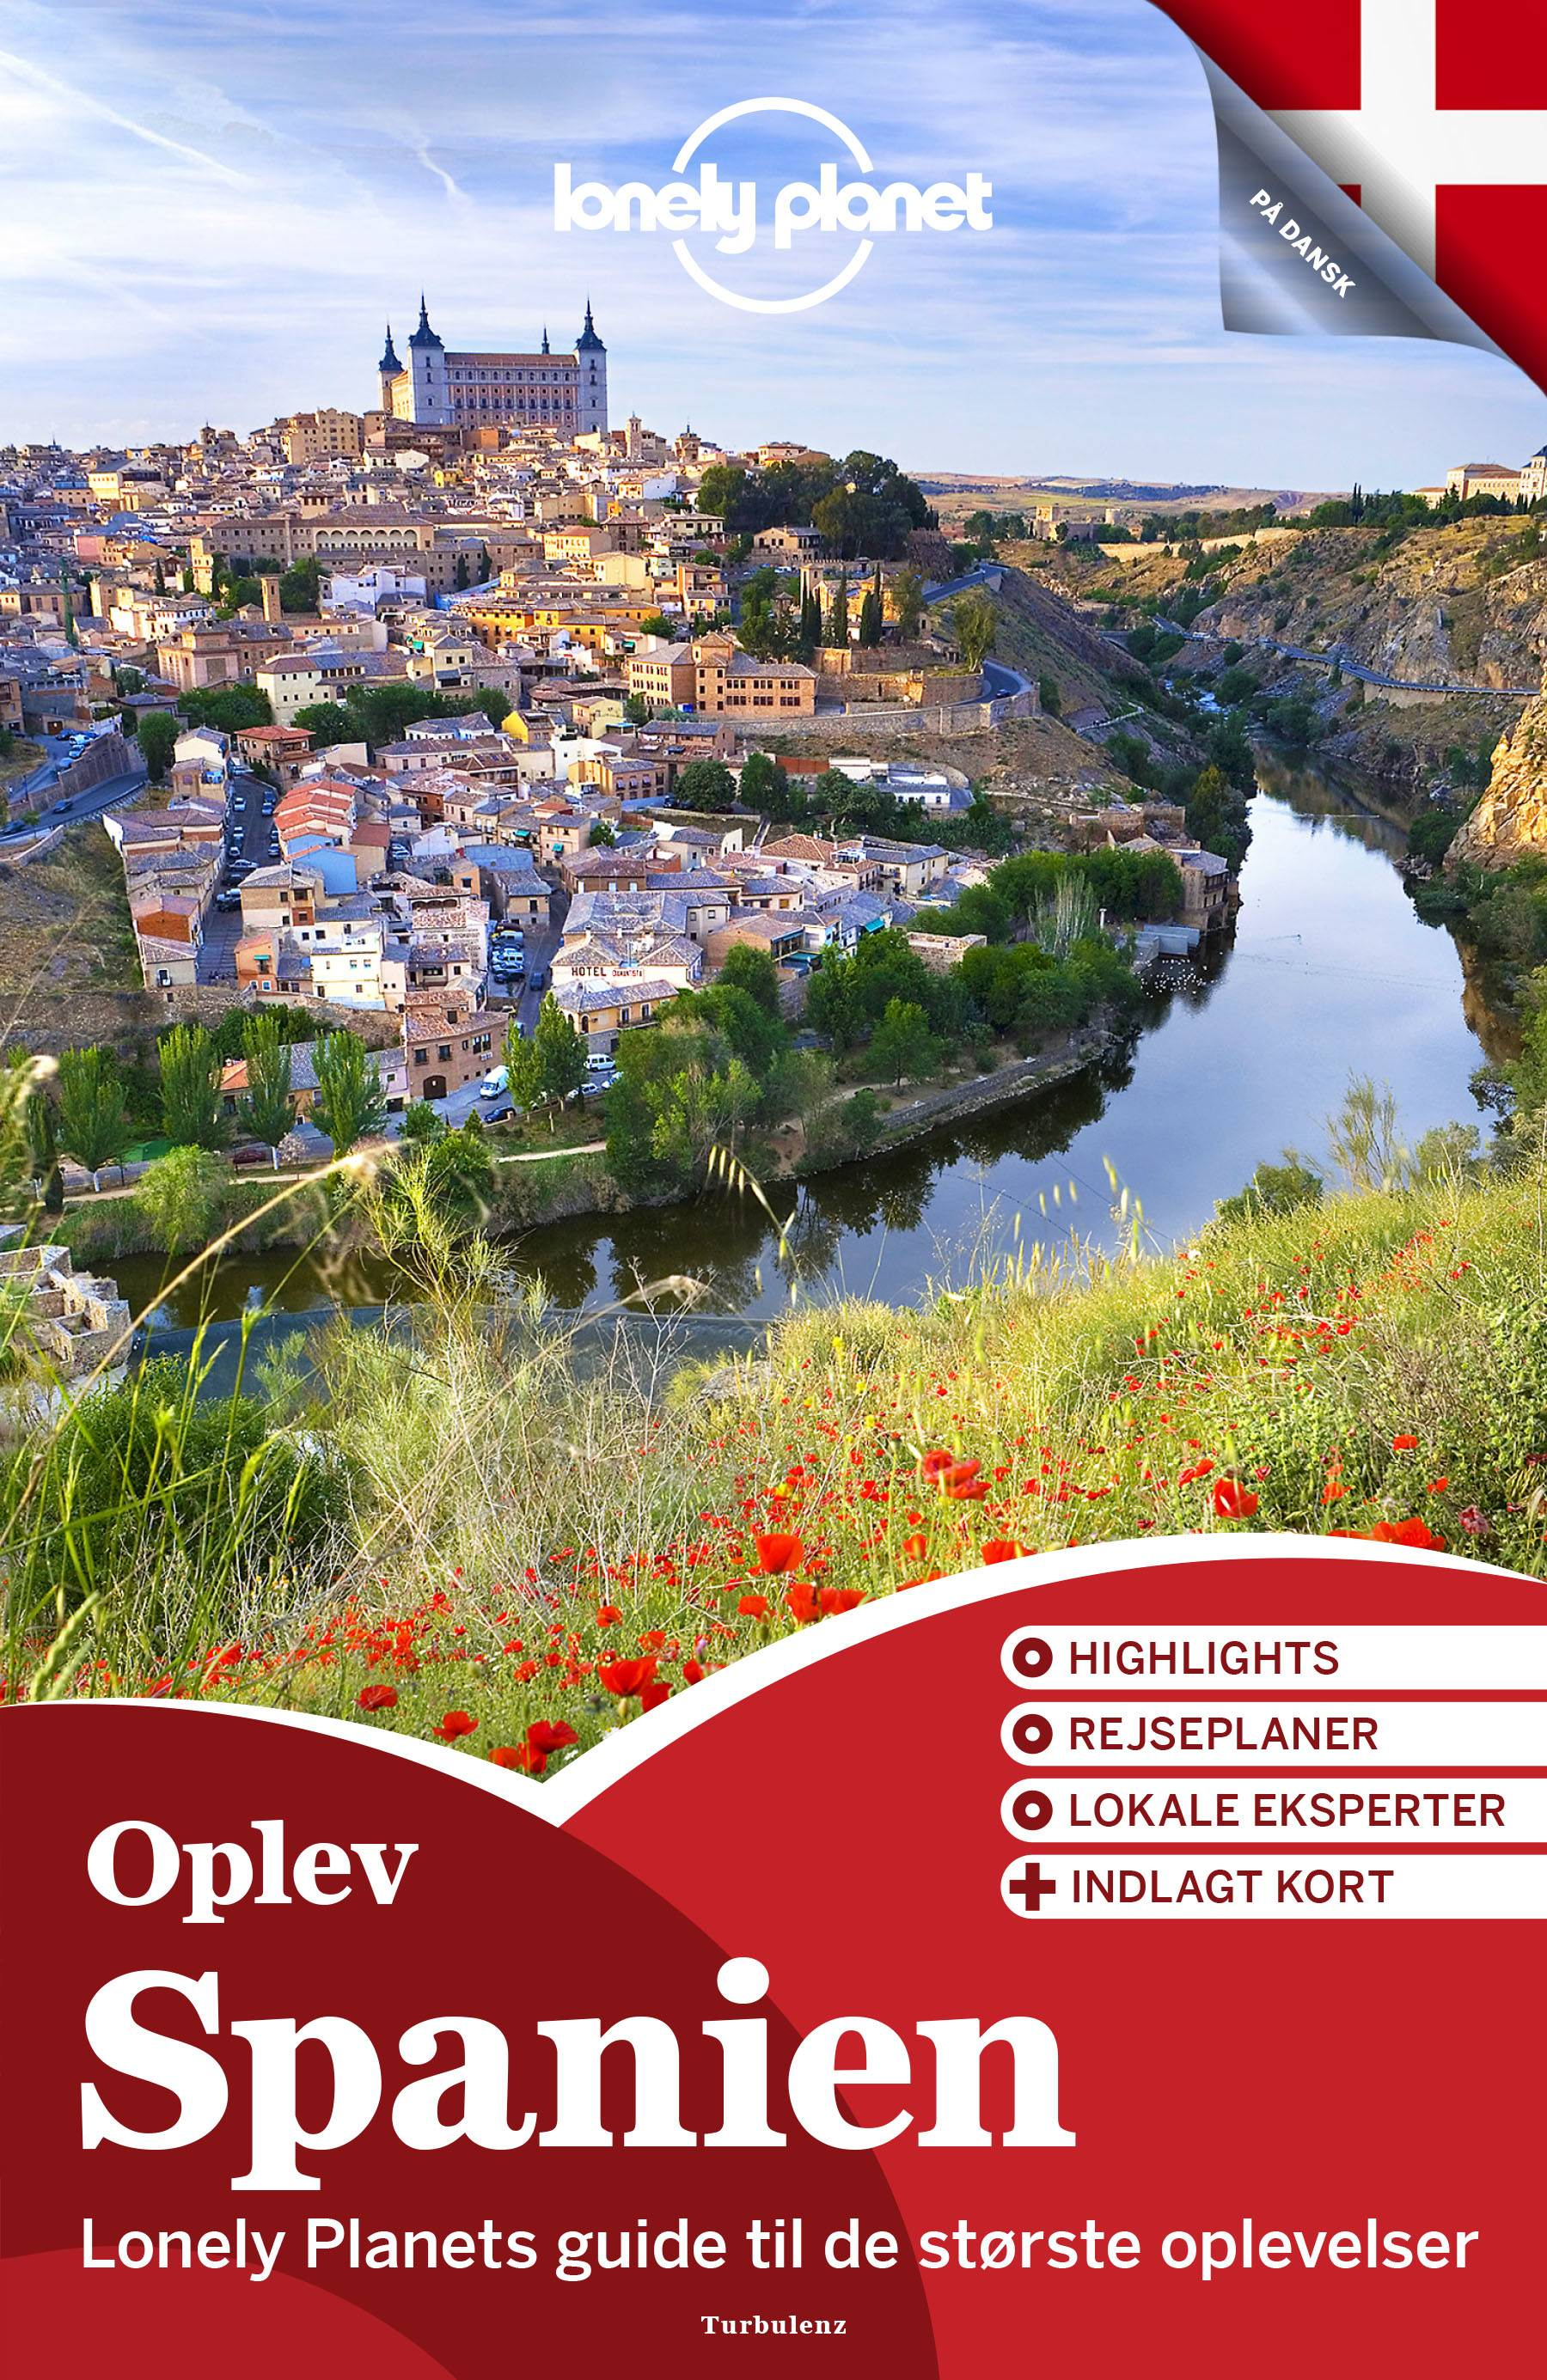 Oplev Spanien (Lonely Planet)